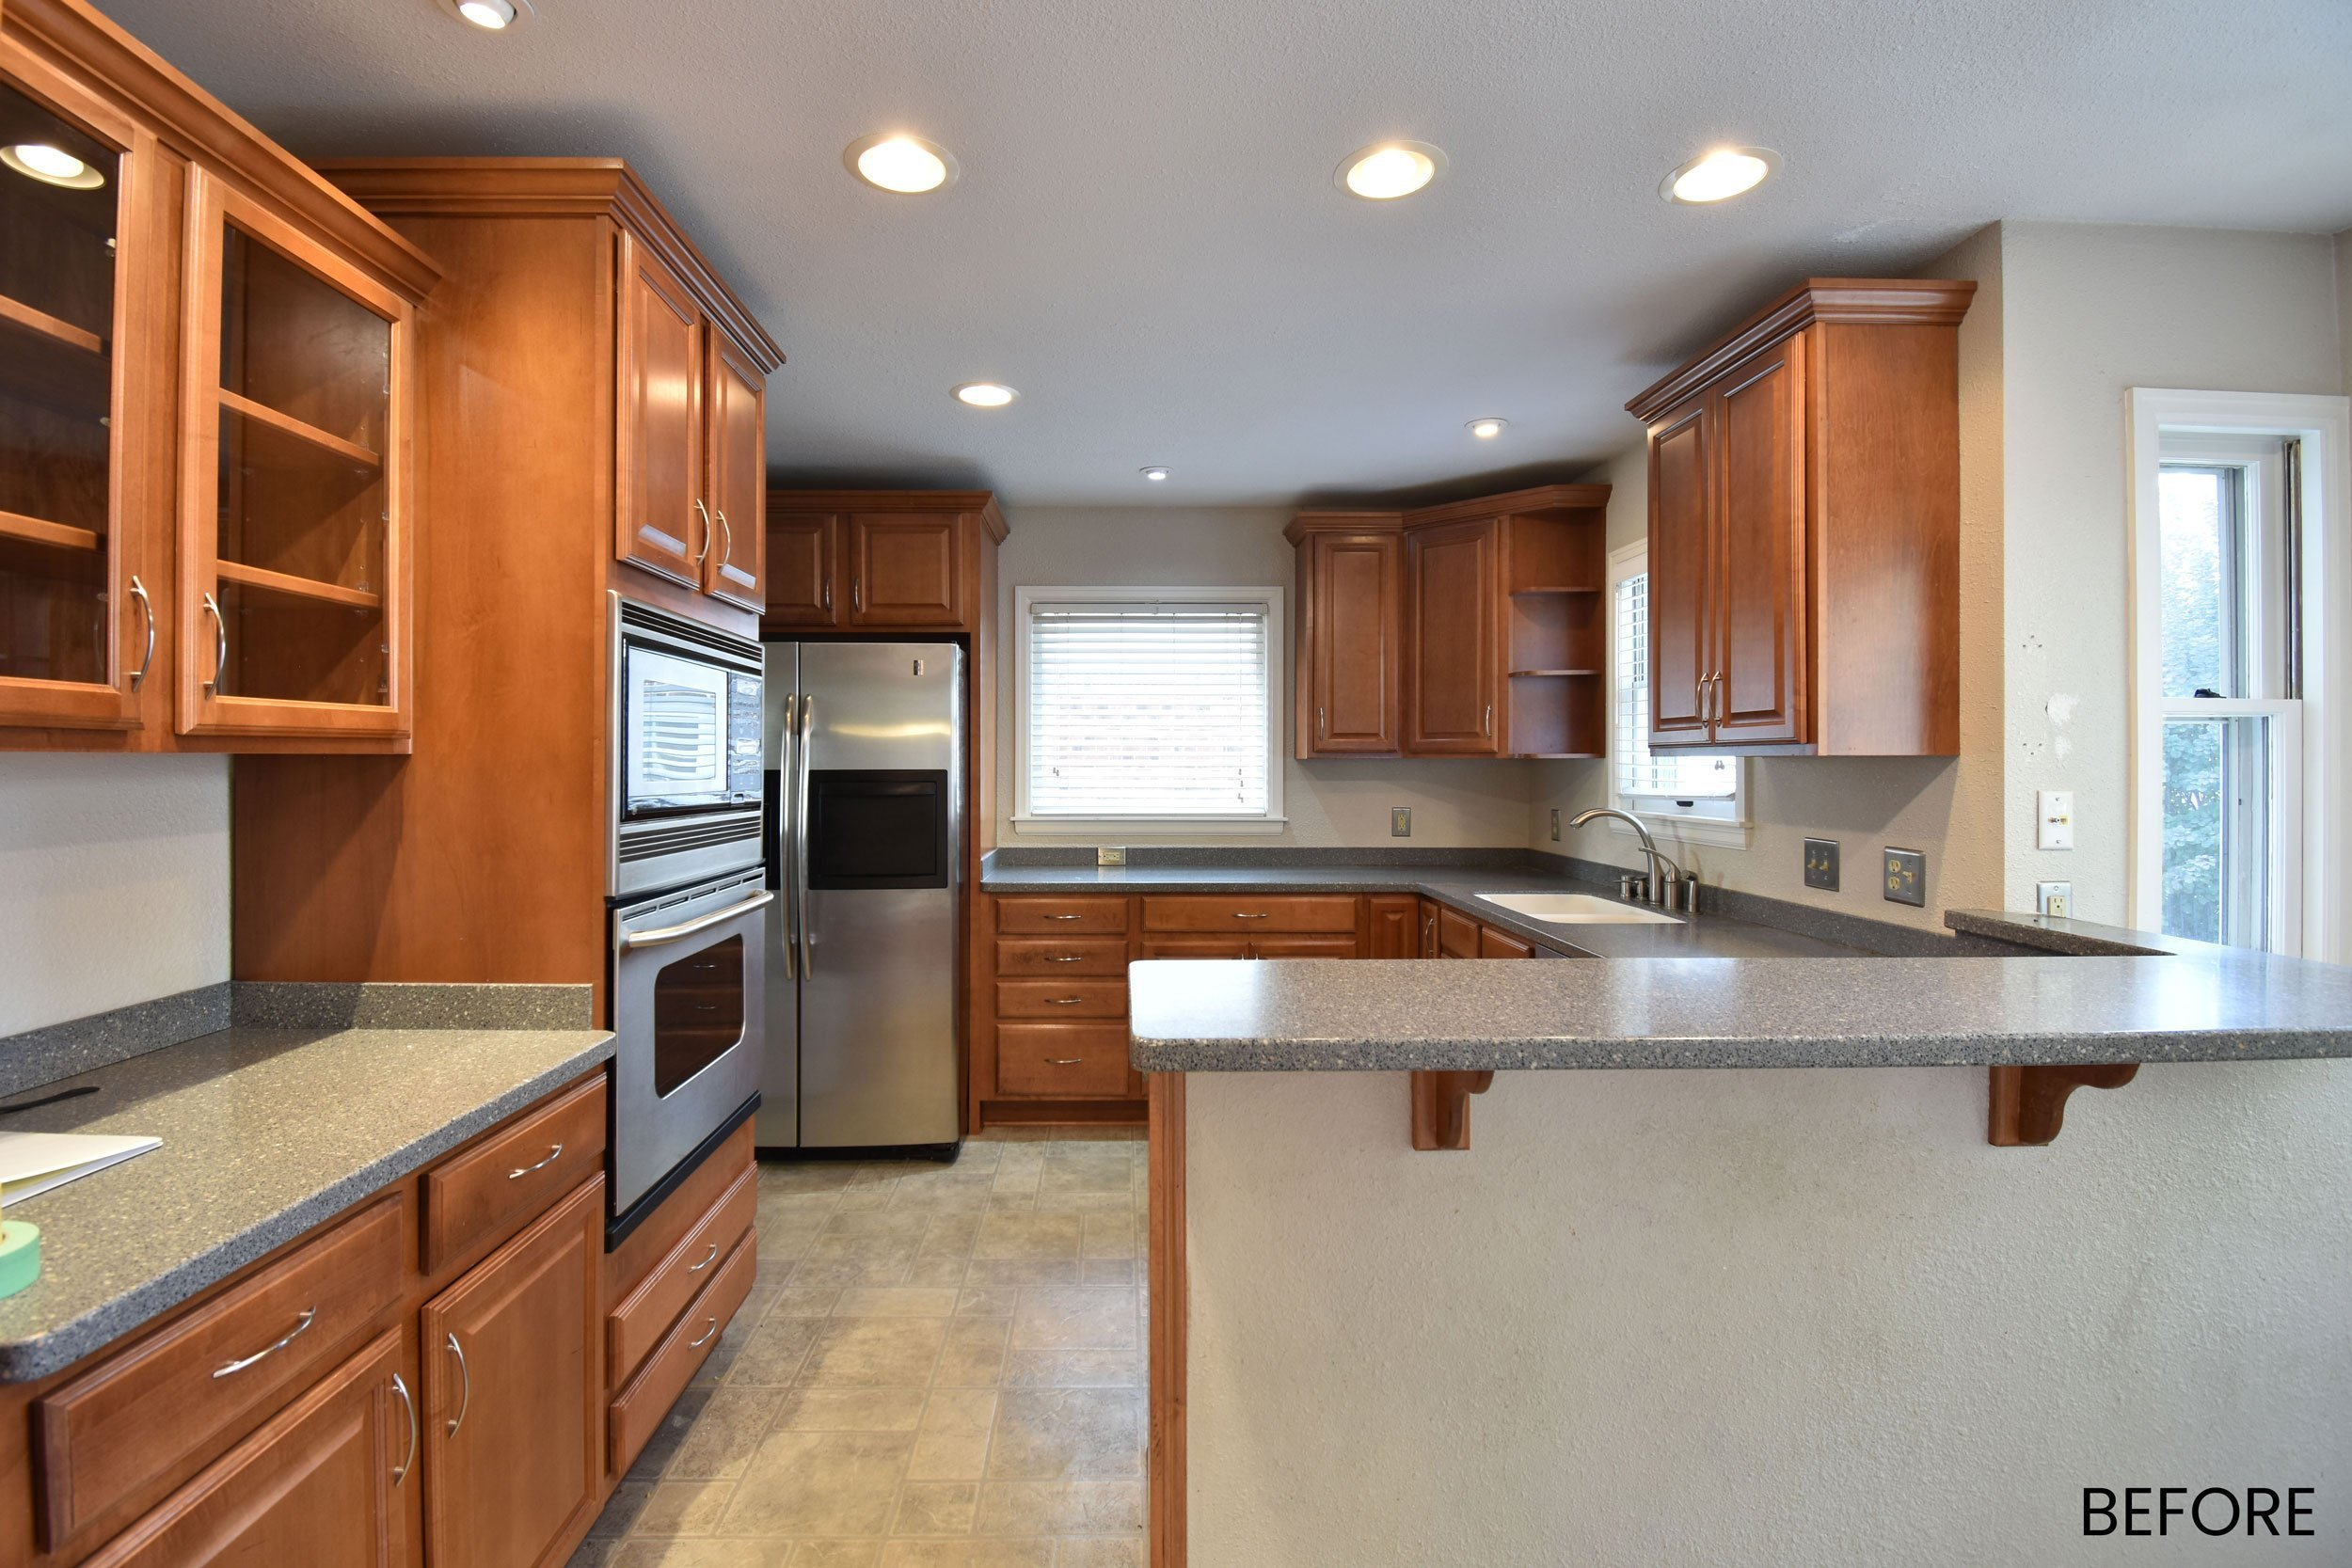 Kowalske-Wauwatosa-open-kitchen-before-343